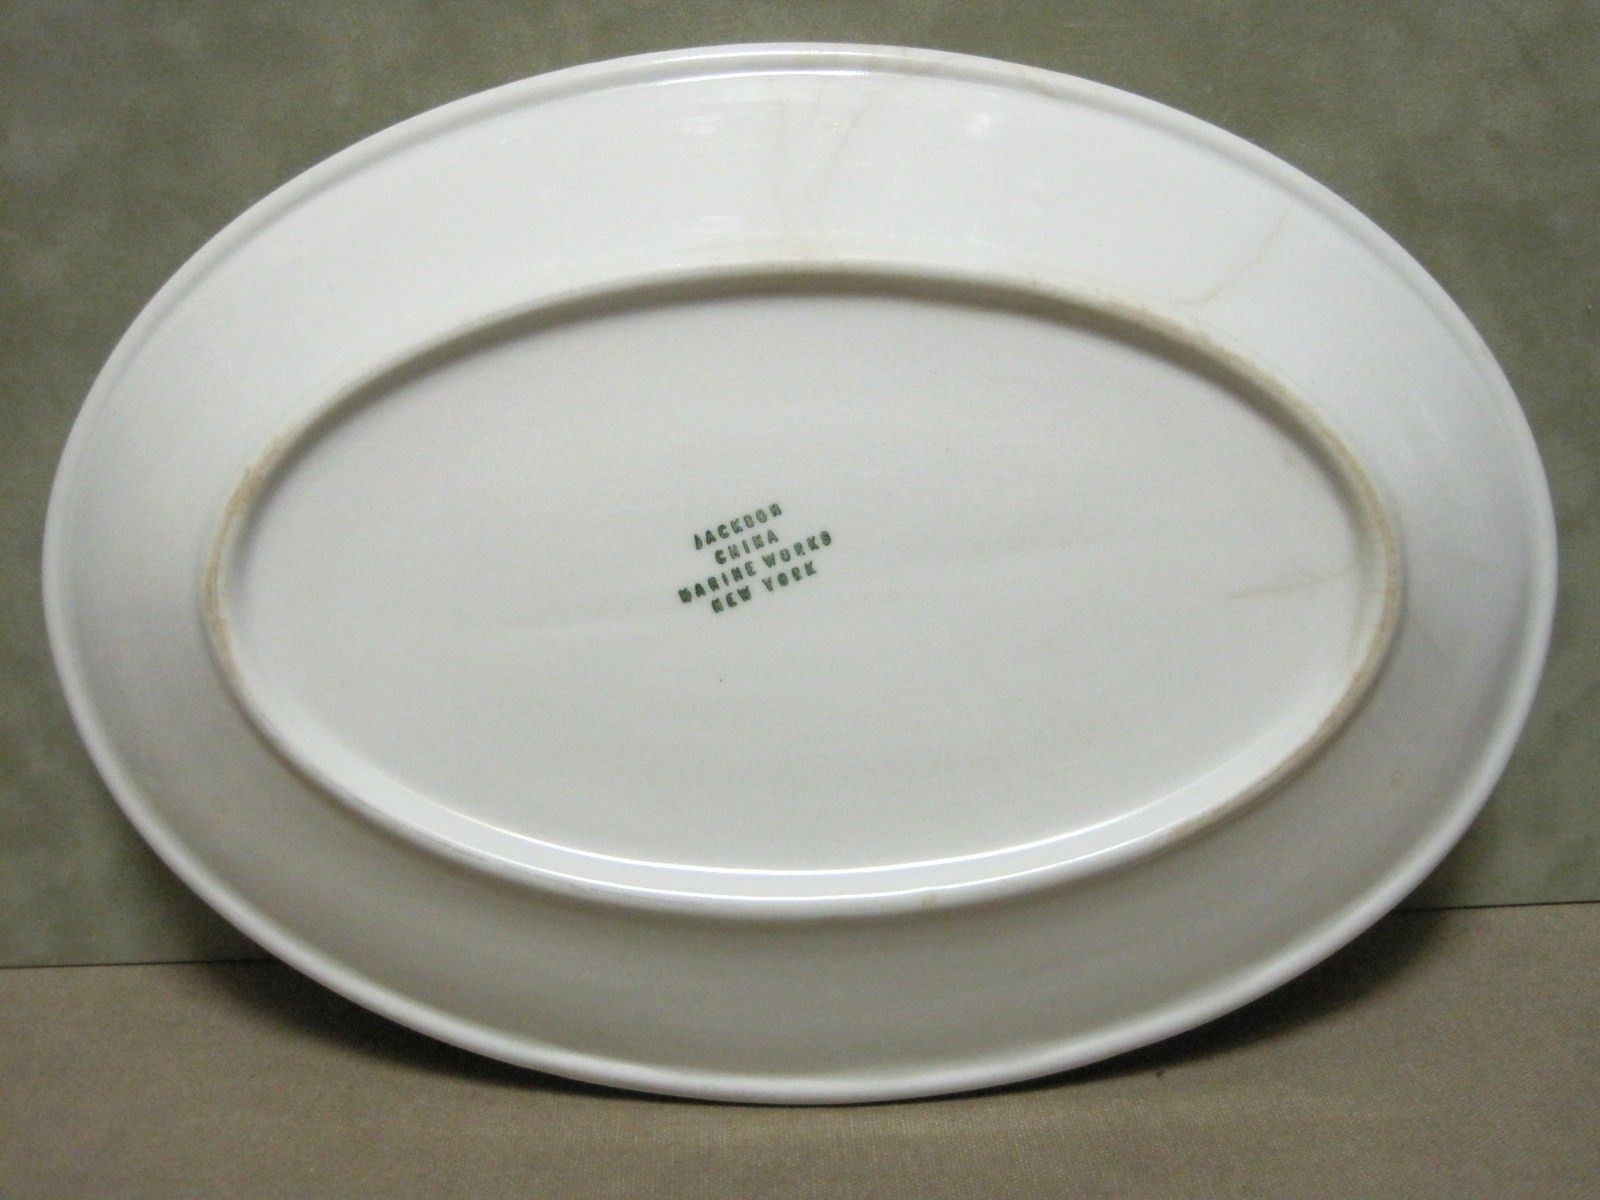 USCG Coast Guard China ivory white, green and burgundy platter